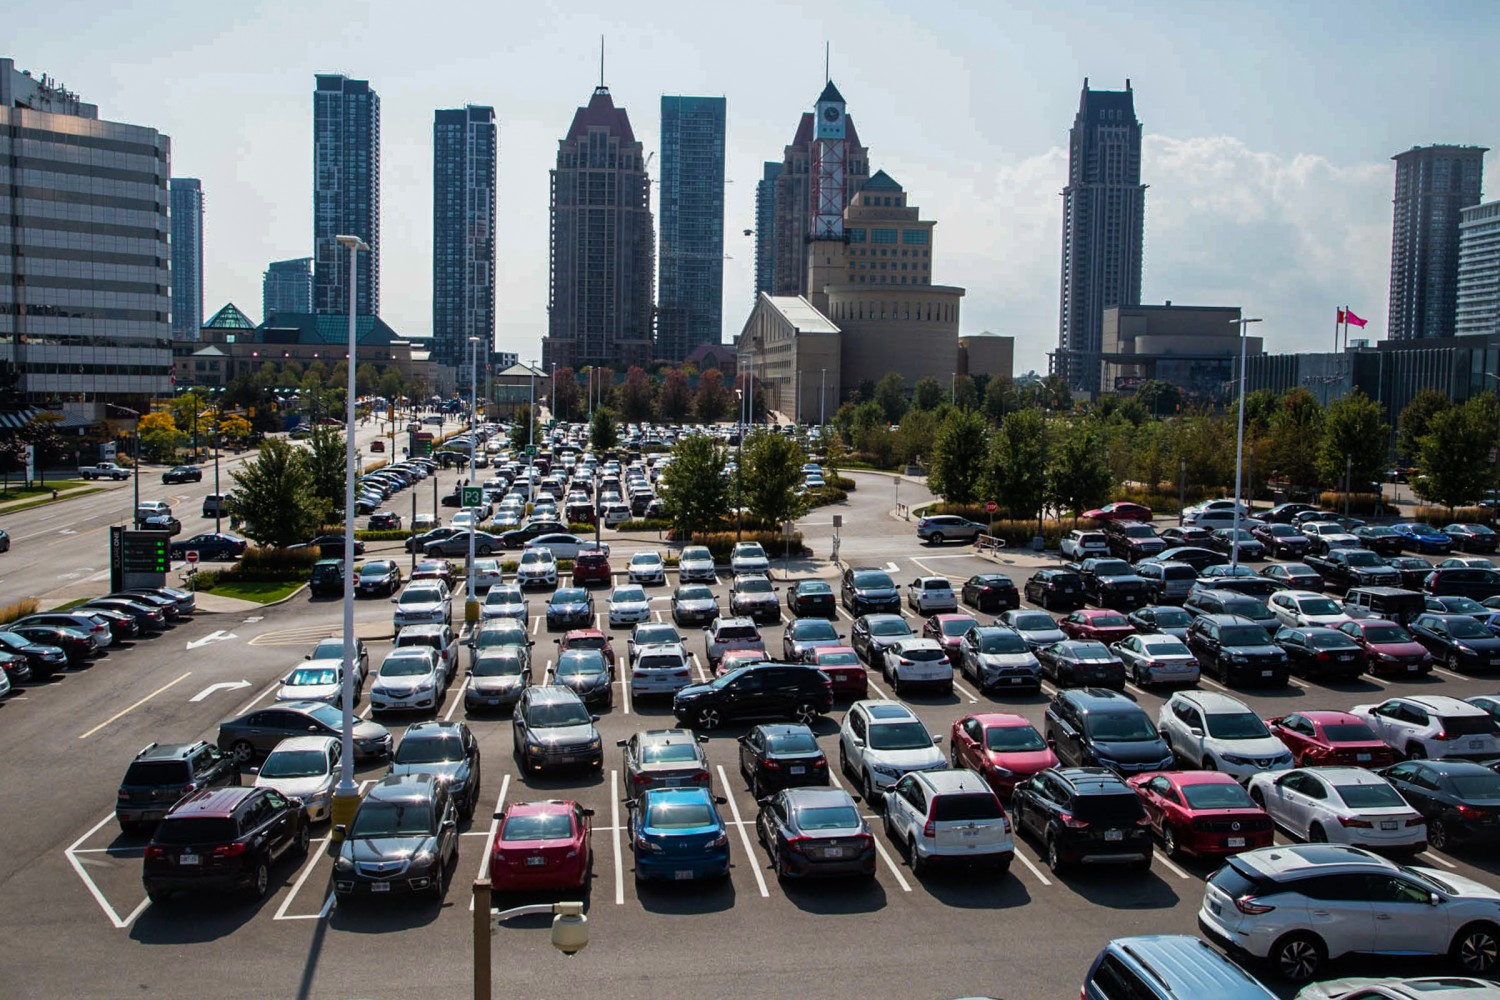 Mississauga faces tough decisions in years to come as city passes ambitious $450M climate action plan